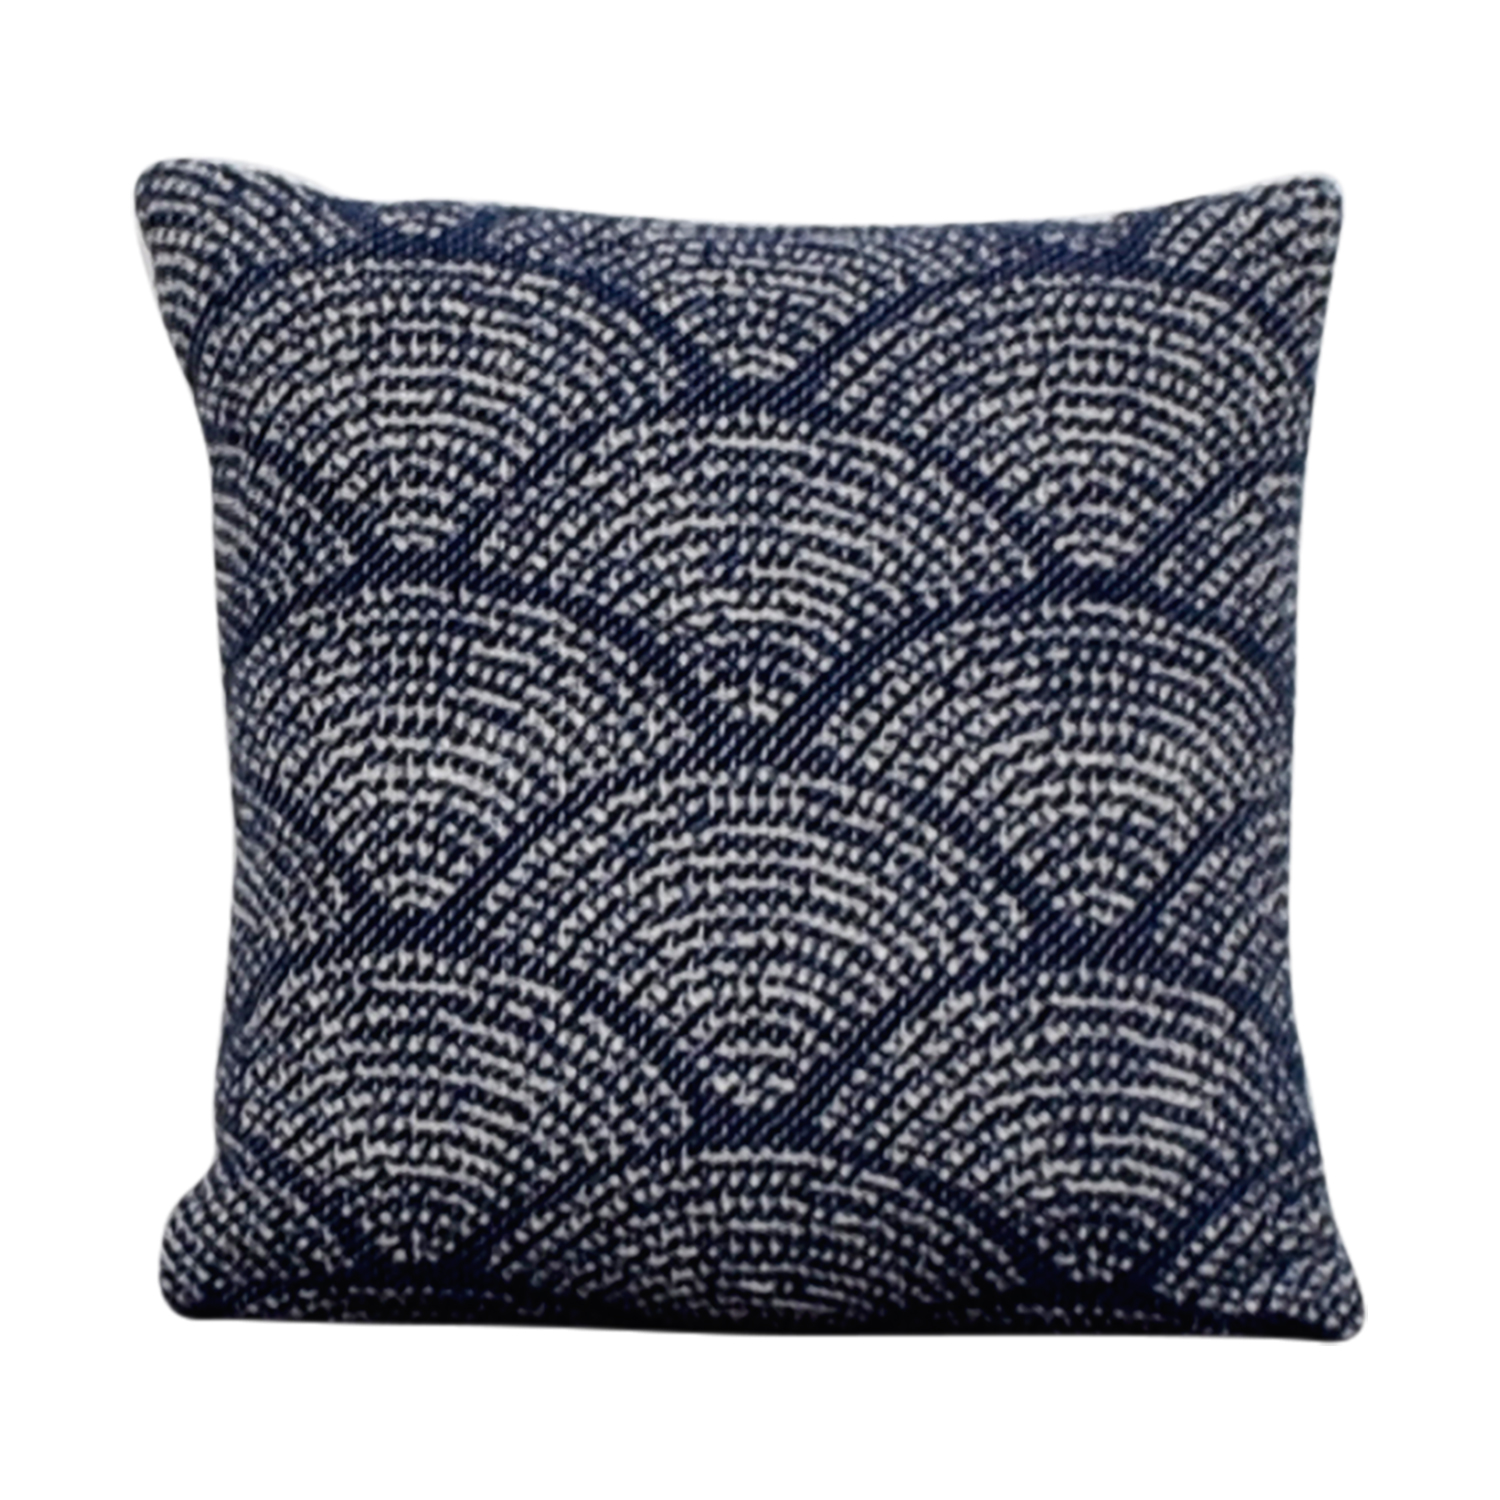 Obeetee Navy and White Scalloped Toss Pillow / Decor